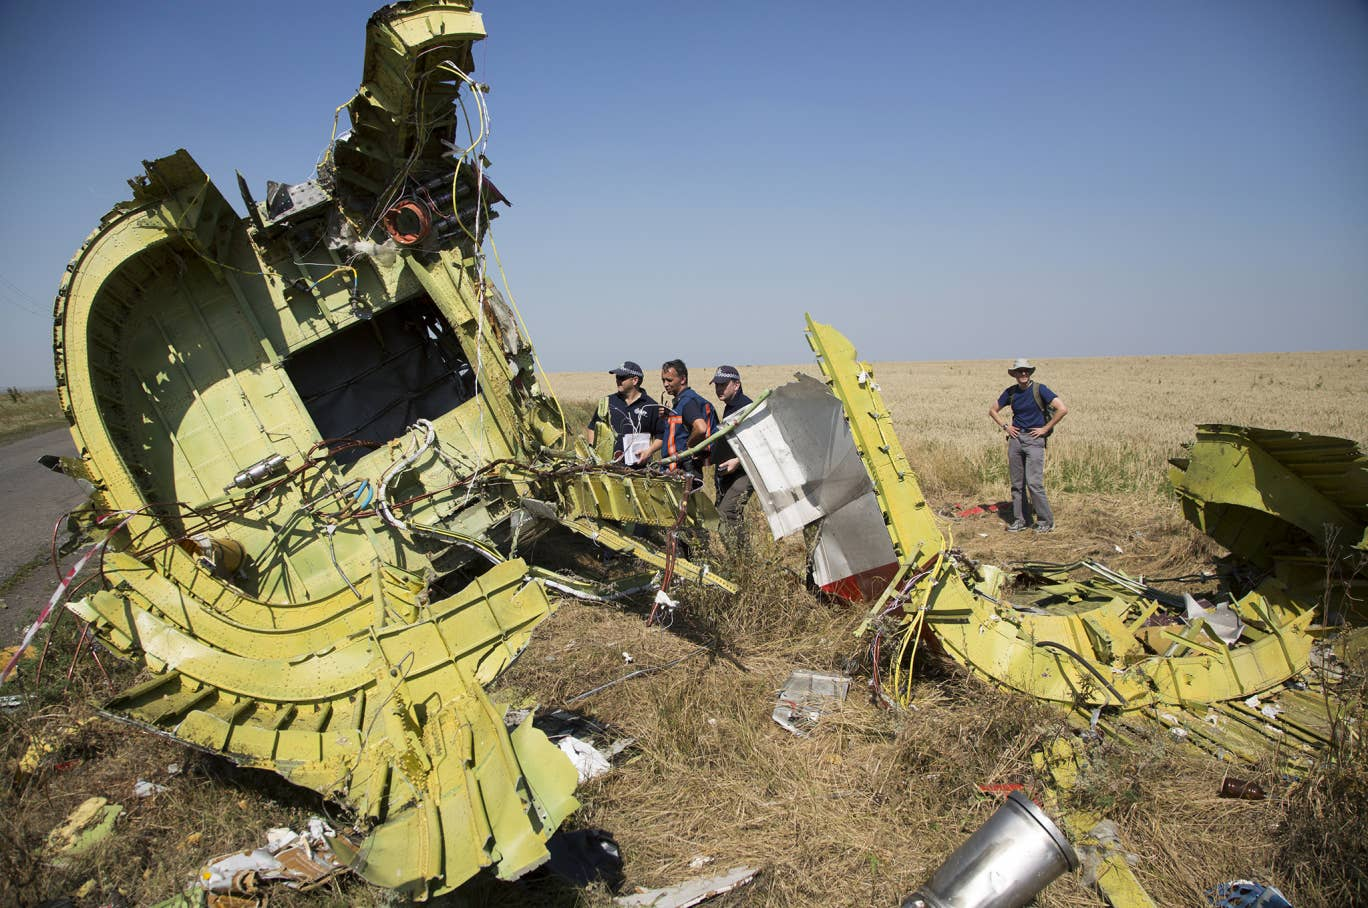 Australian and Dutch investigators examine pieces of the Malaysia Airlines Flight 17 plane crash in the village of Hrabove, Donetsk region, eastern Ukraine